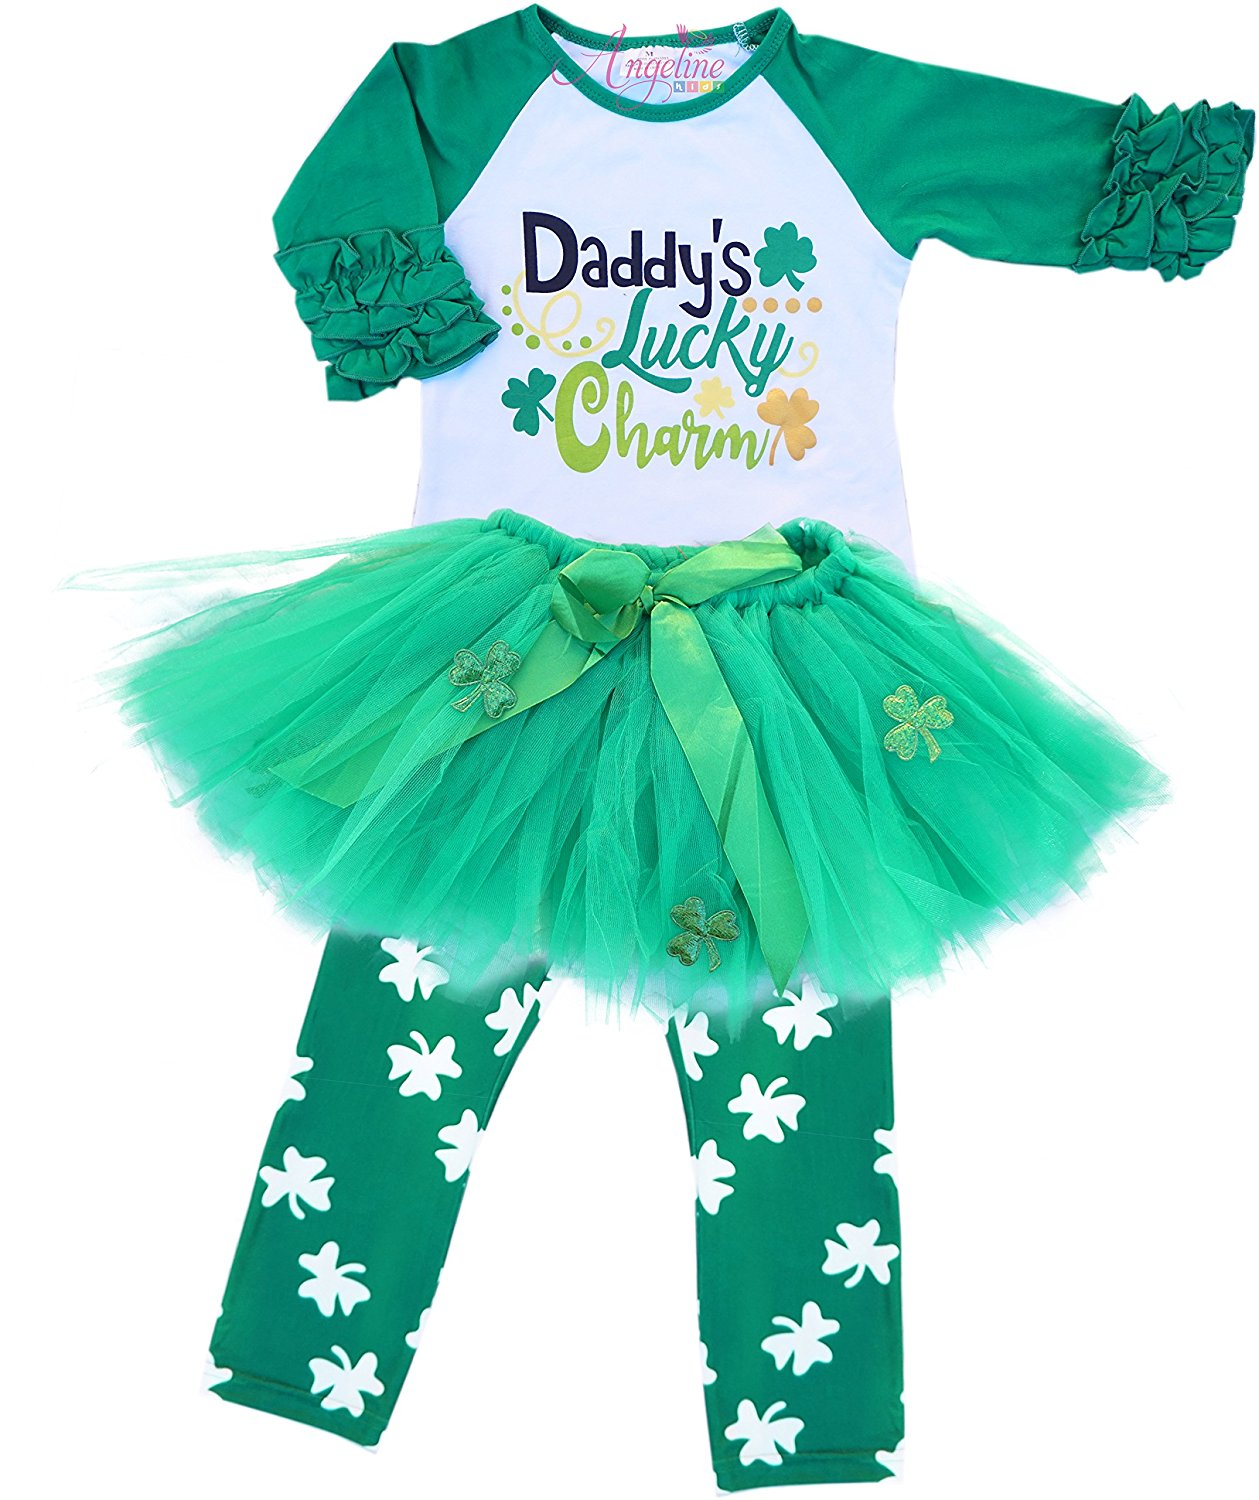 Petitebella ST Patricks Day Green Sequined Pettiskirt Skirt Party Dress Girl Clothing 1-8y